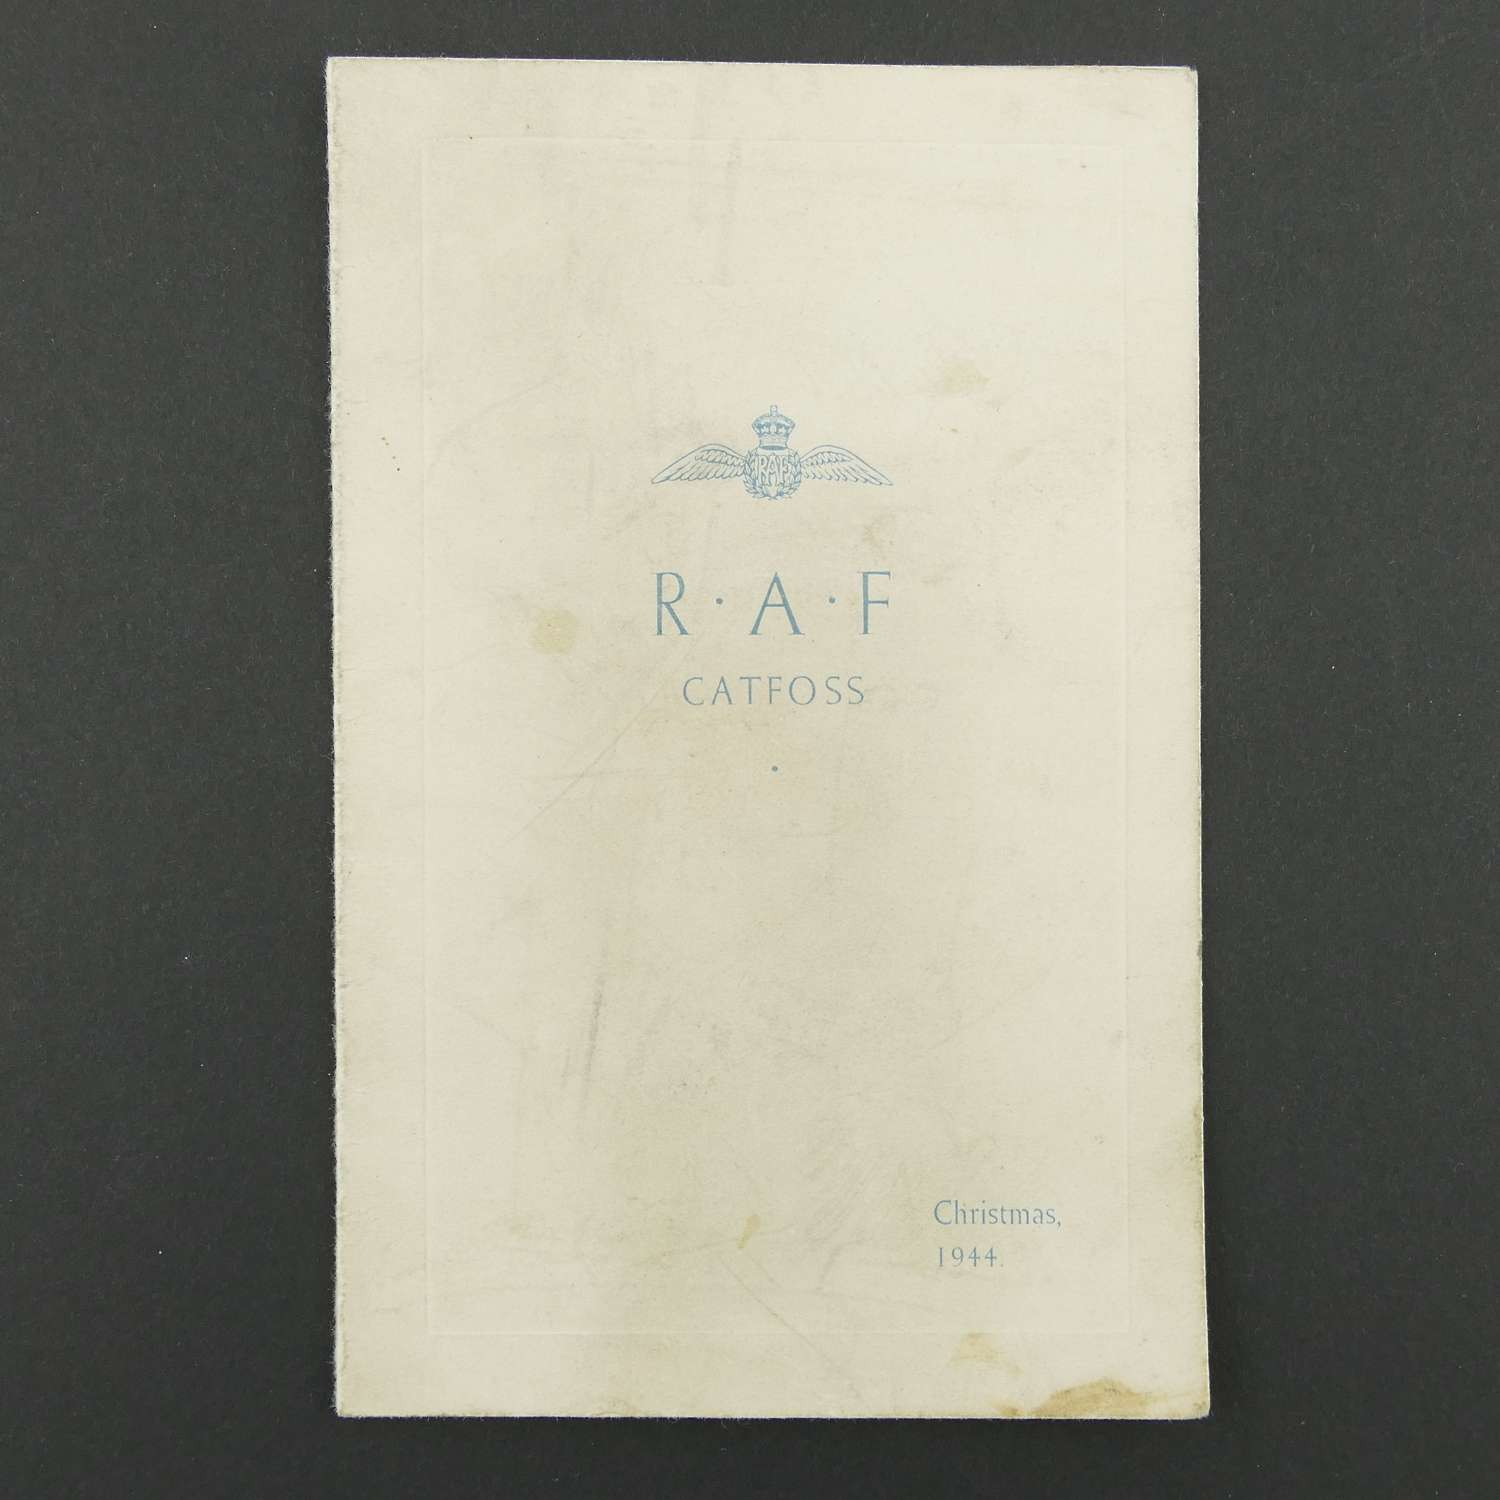 RAF Catfoss Christmas card/menu, 1944